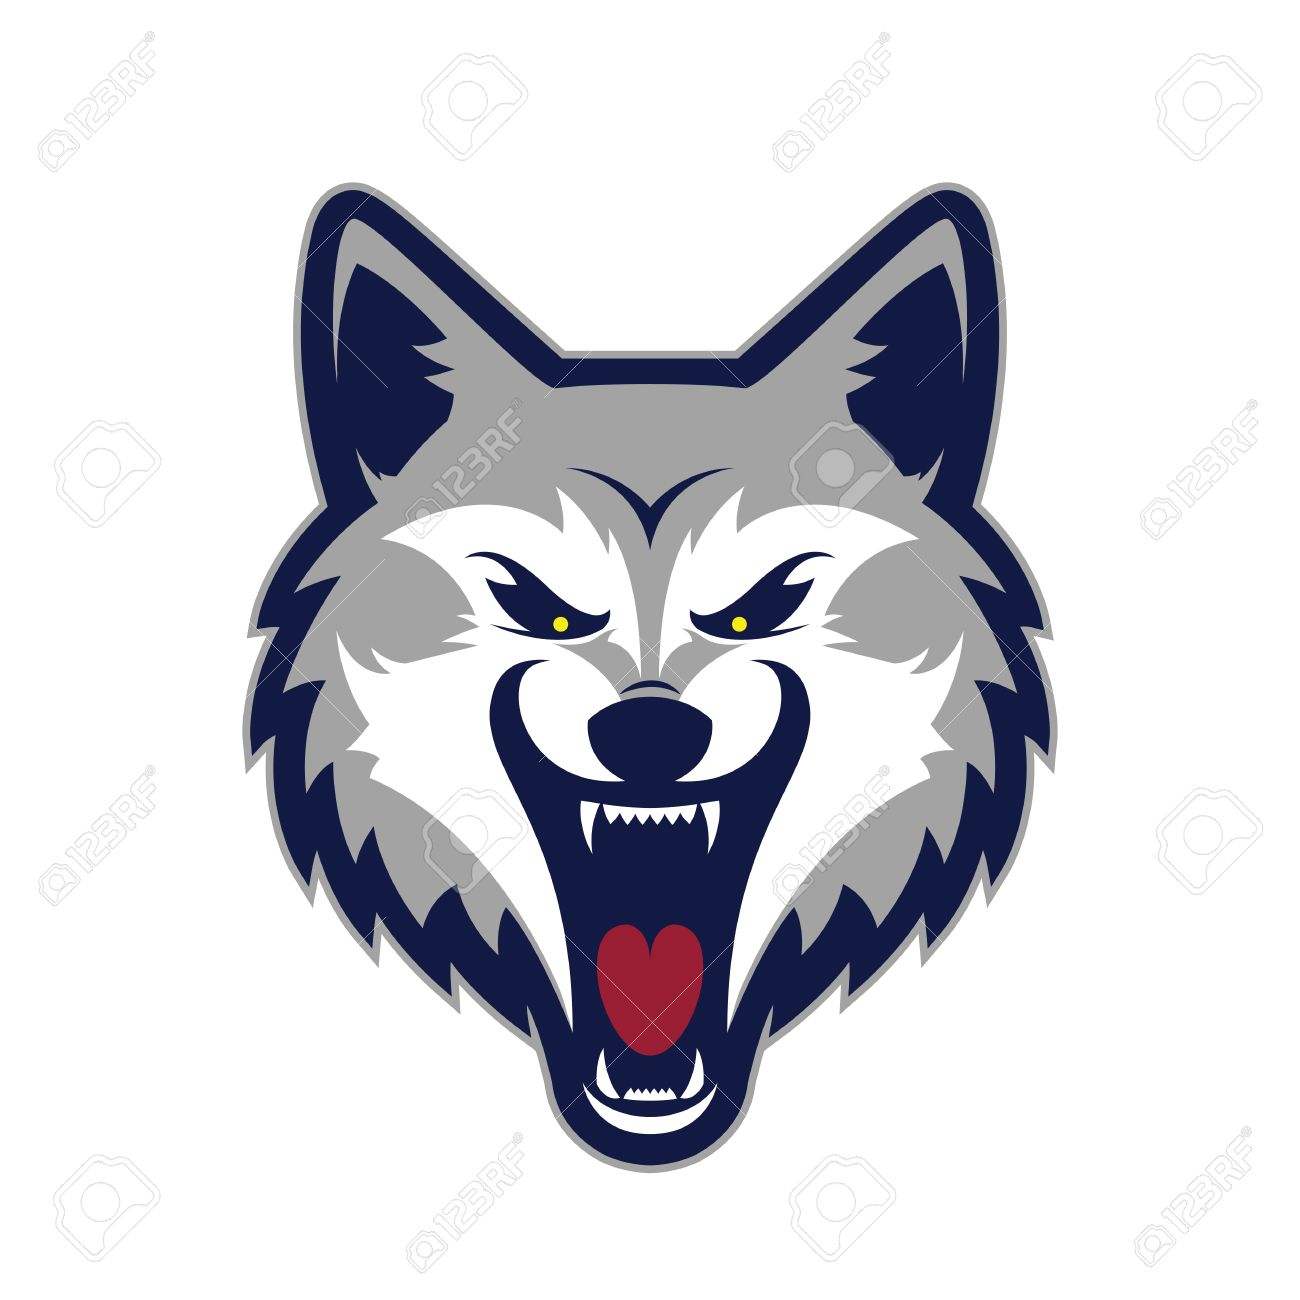 wolf head mascot royalty free cliparts vectors and stock rh 123rf com wolf vector free wolf vector art free